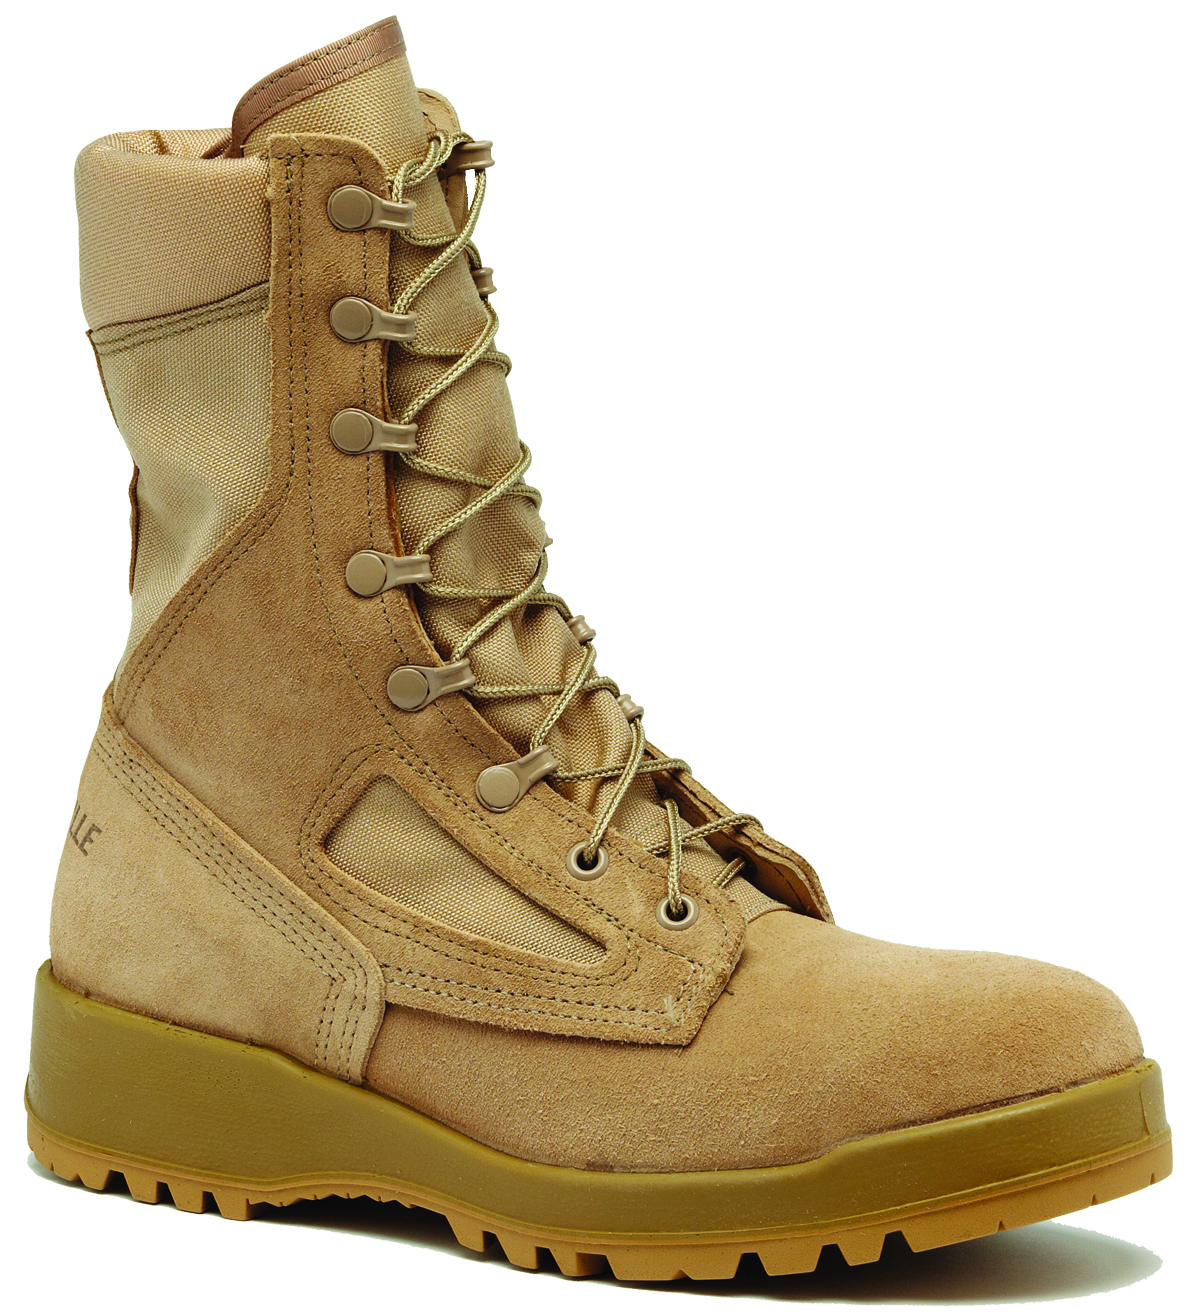 Belleville 300 DES ST Hot Weather Steel Toe Combat Boots 01059fb4cc3